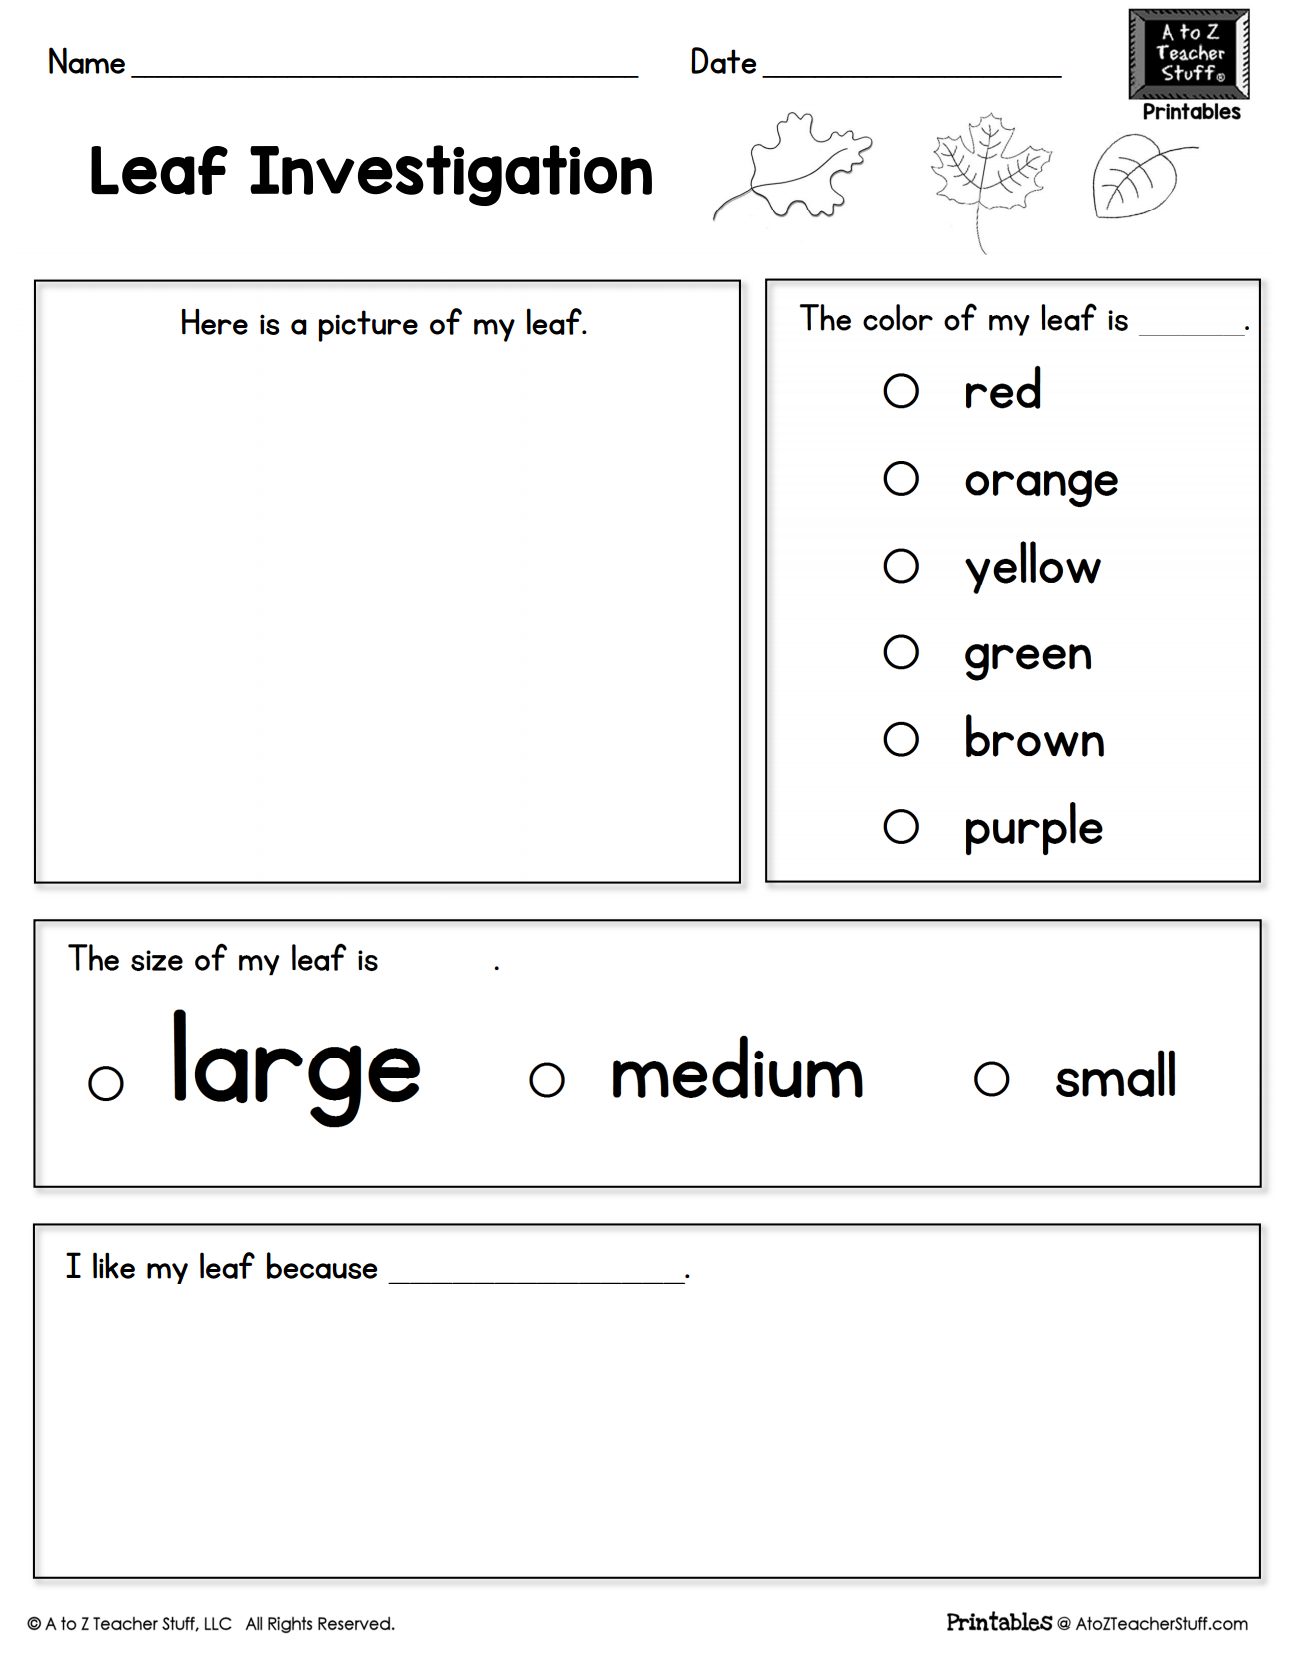 Leaf Investigation Printable Worksheet – Worksheet Printables